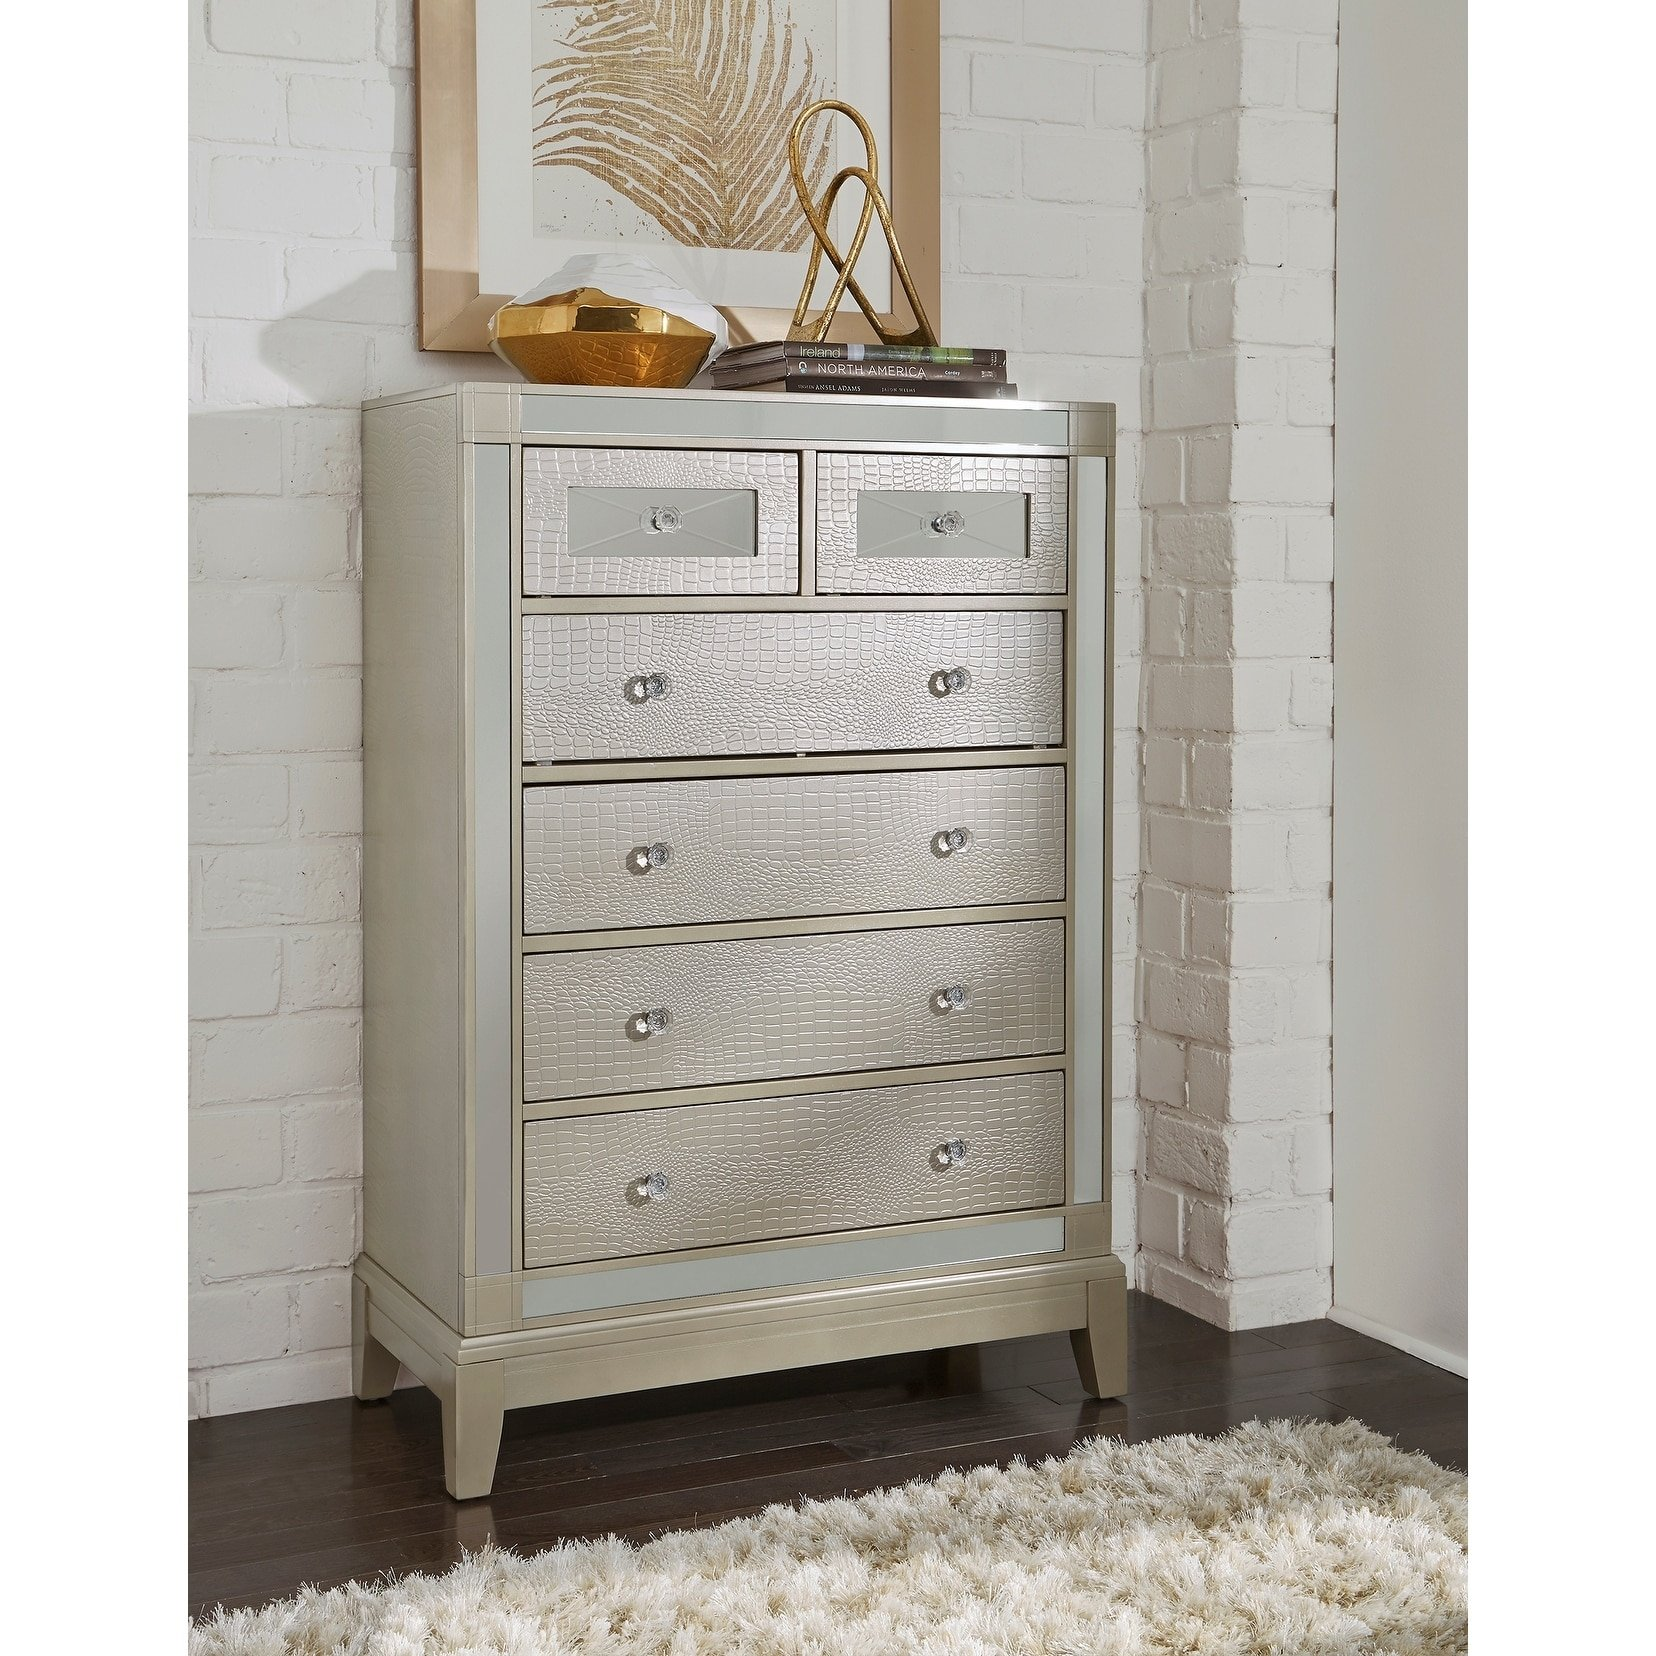 Textured Champagne Mirror Chest, Mirrored Accents, Ample Storage Drawers, Bundle with Ebook for Home Furnitures